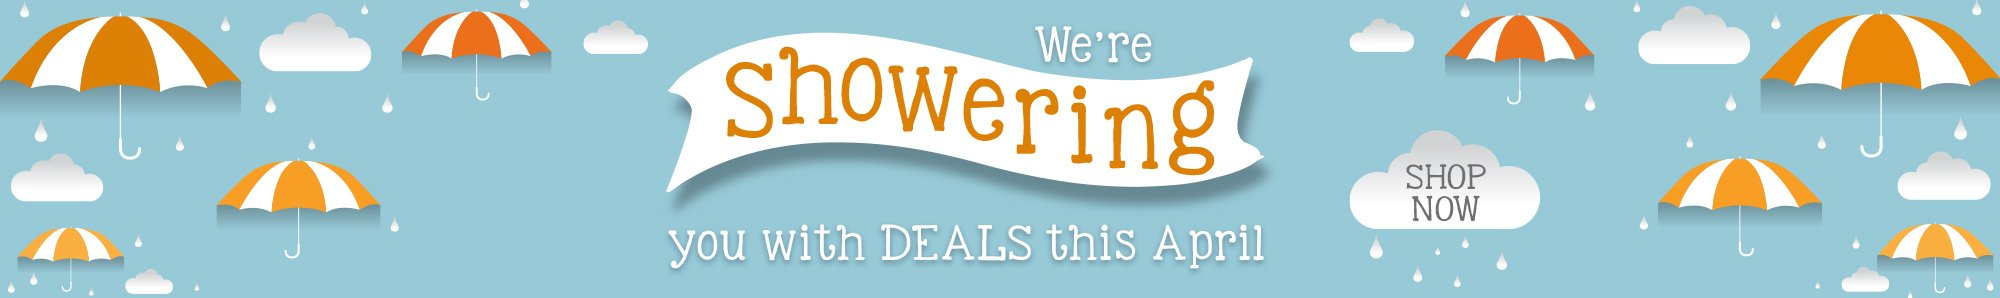 We're showering you with deals this April at www.OfficeZilla.com!